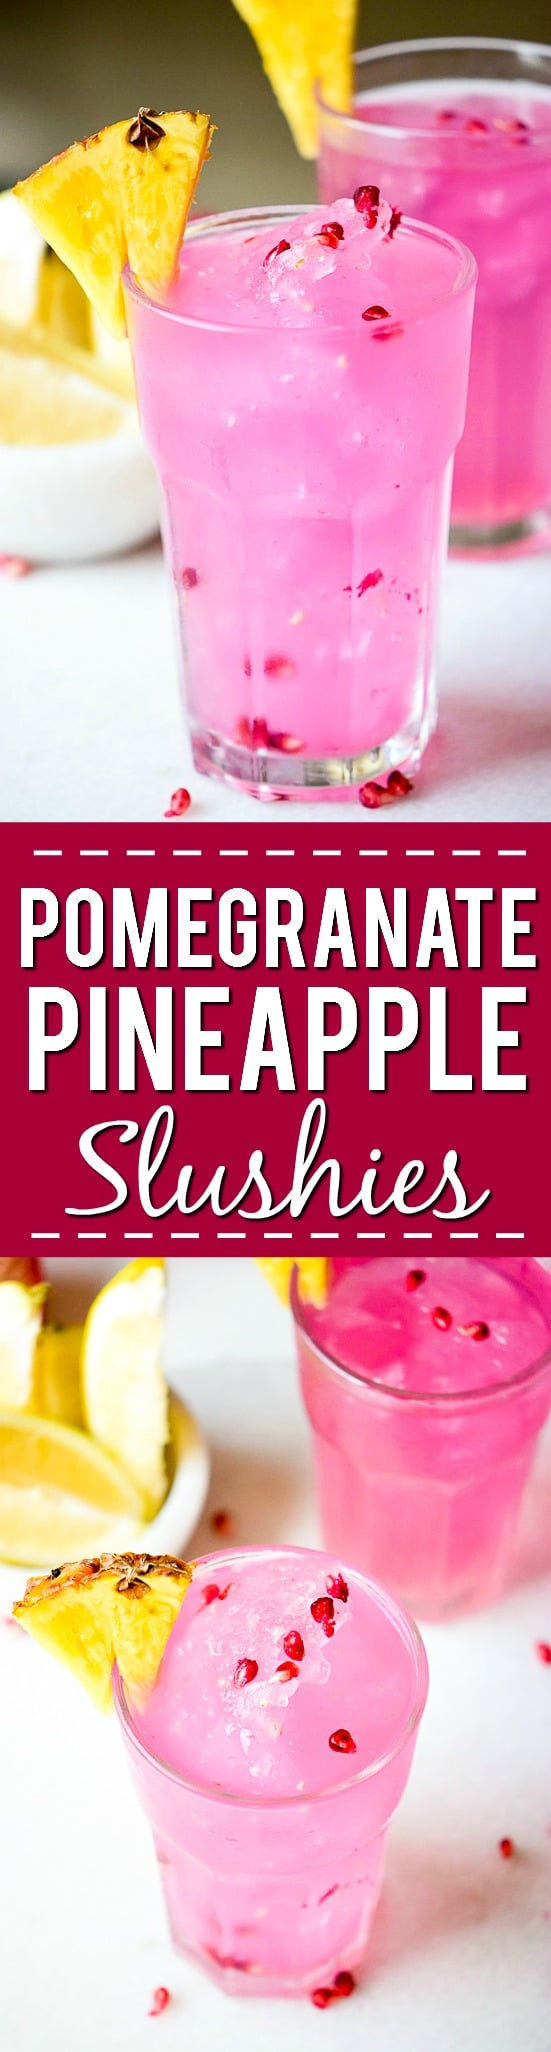 Pomegranante Pineapple Slushies Recipe - Cool, citrus flavors make this Pomegranate Pineapple Slushies recipe makes a perfect Summer refresher to cool off on a hot day. Easy Summer non-alcoholic drink recipe that kids can enjoy too!